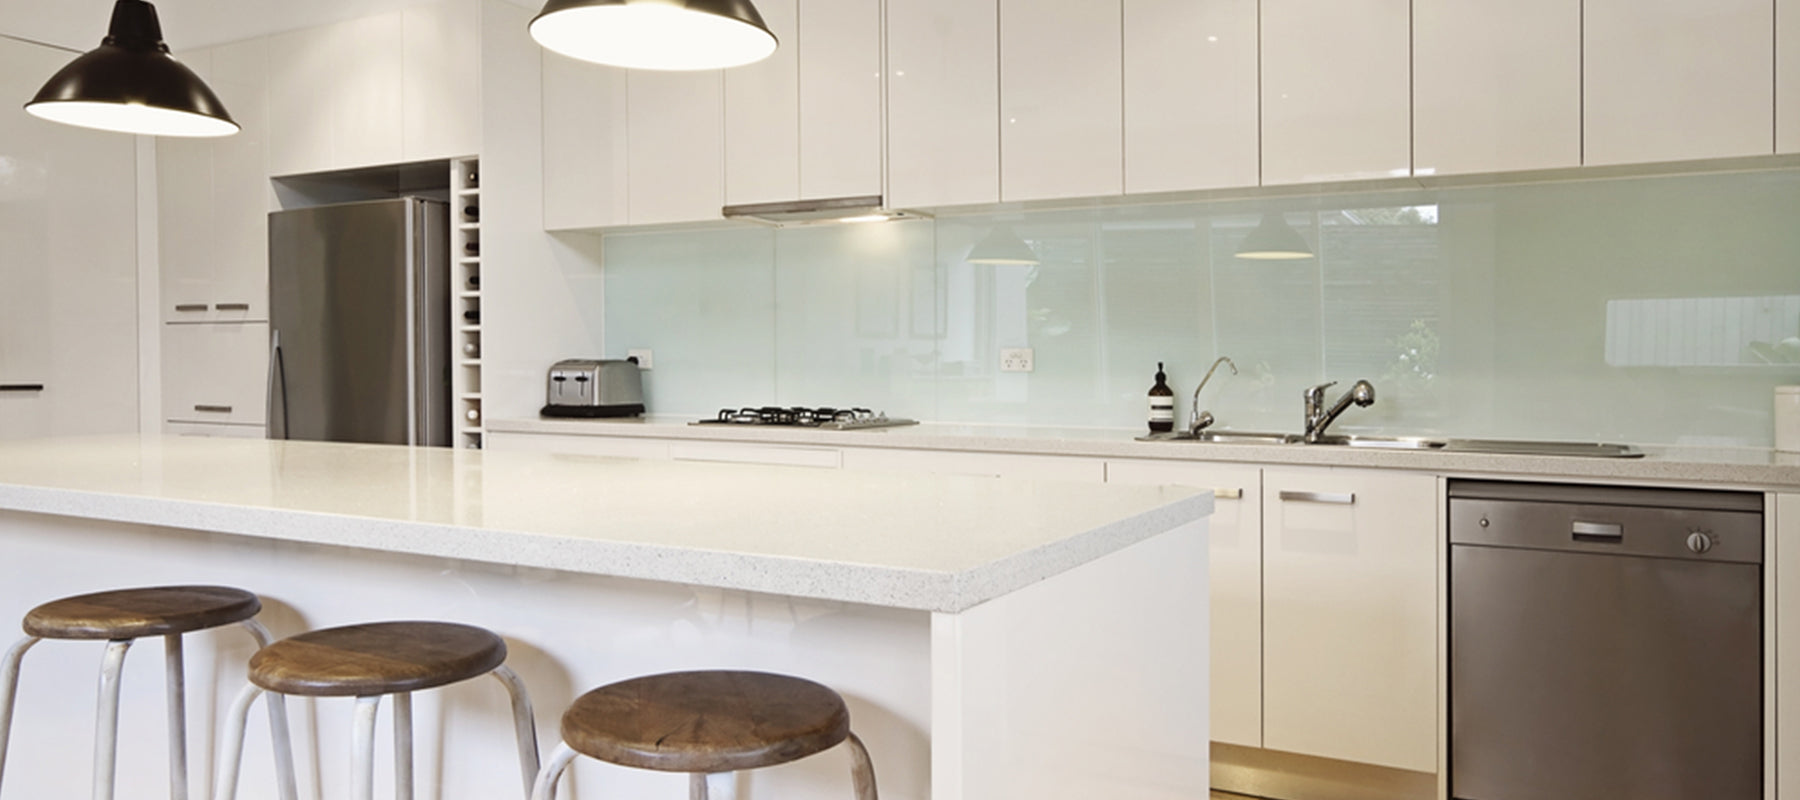 What is a Splashback and do I need one for my house?